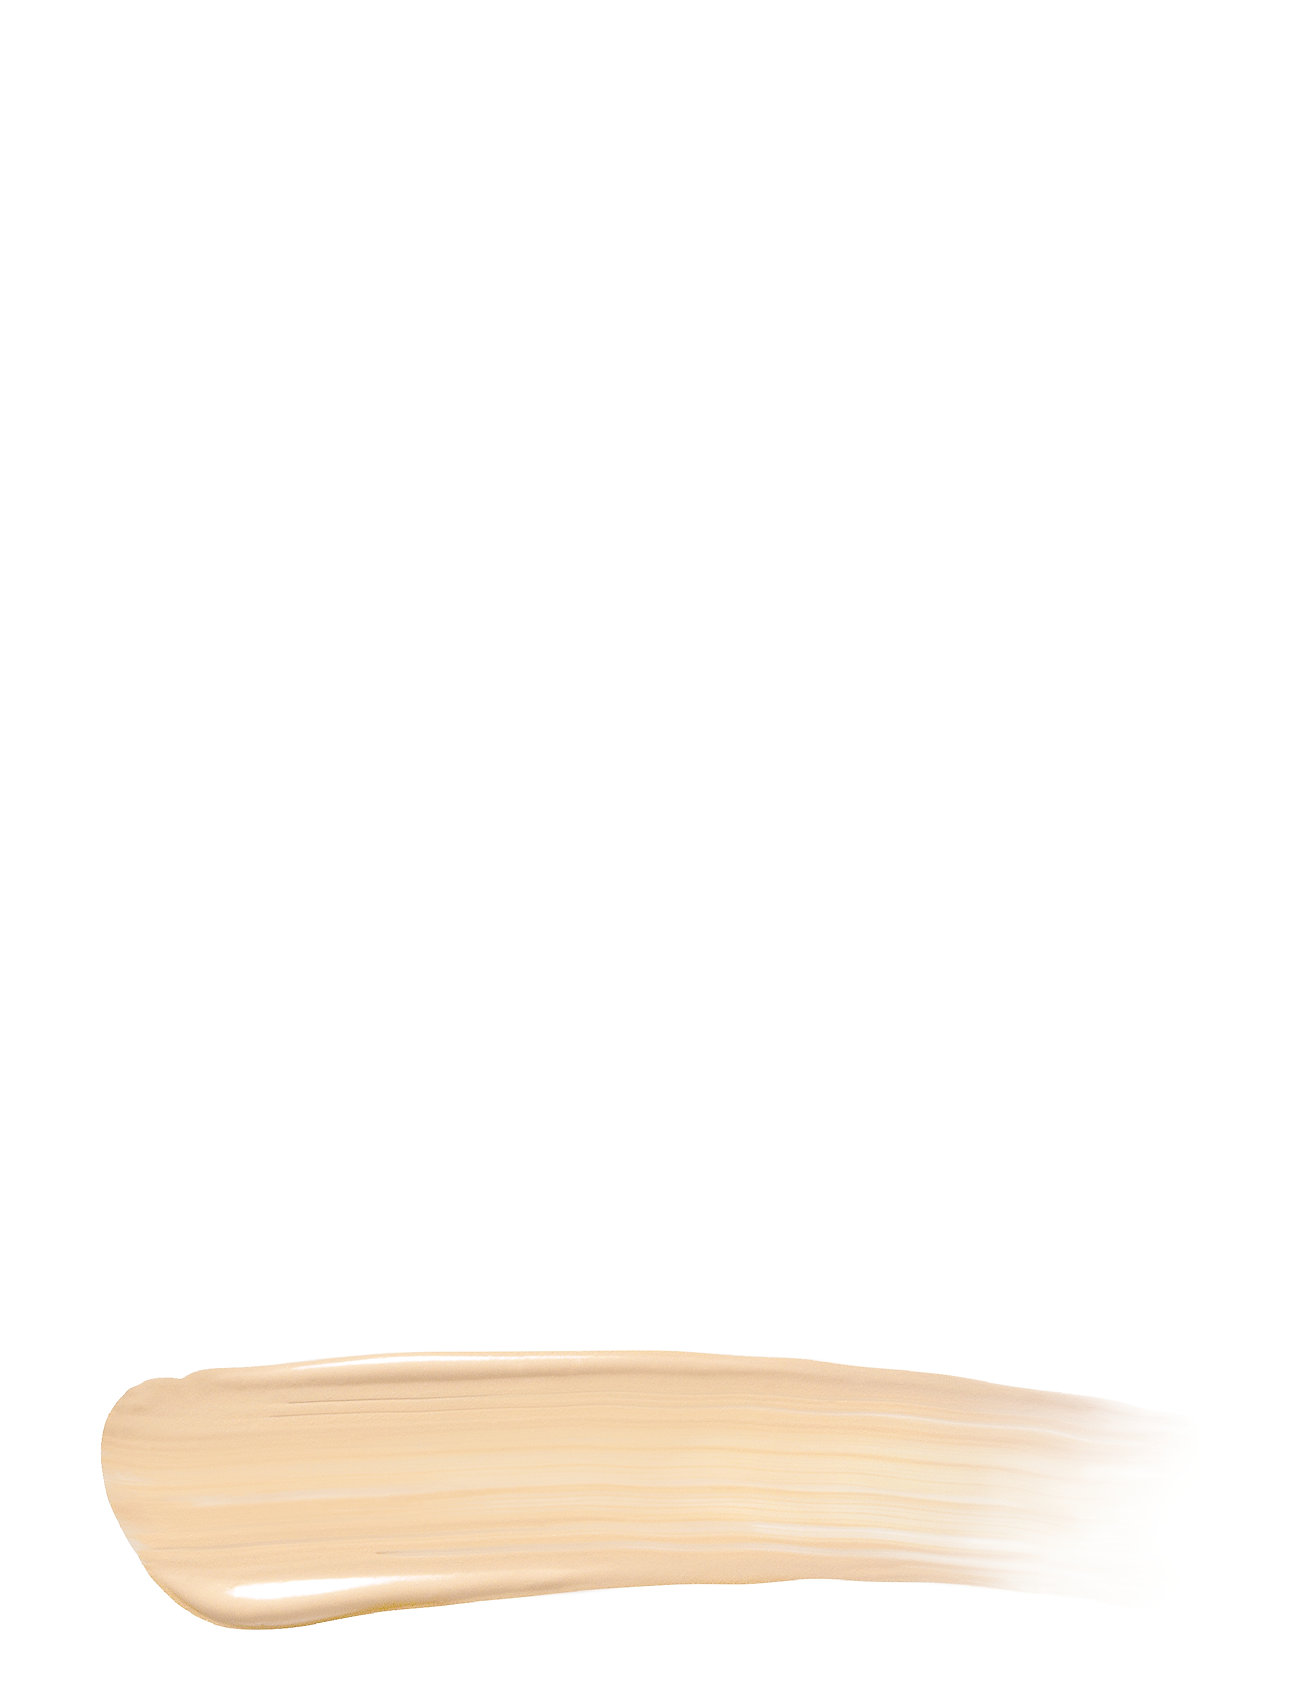 Image of Light Up Concealer 01 Porcelain Light Up Concealer Concealer Makeup Isadora (3422672421)